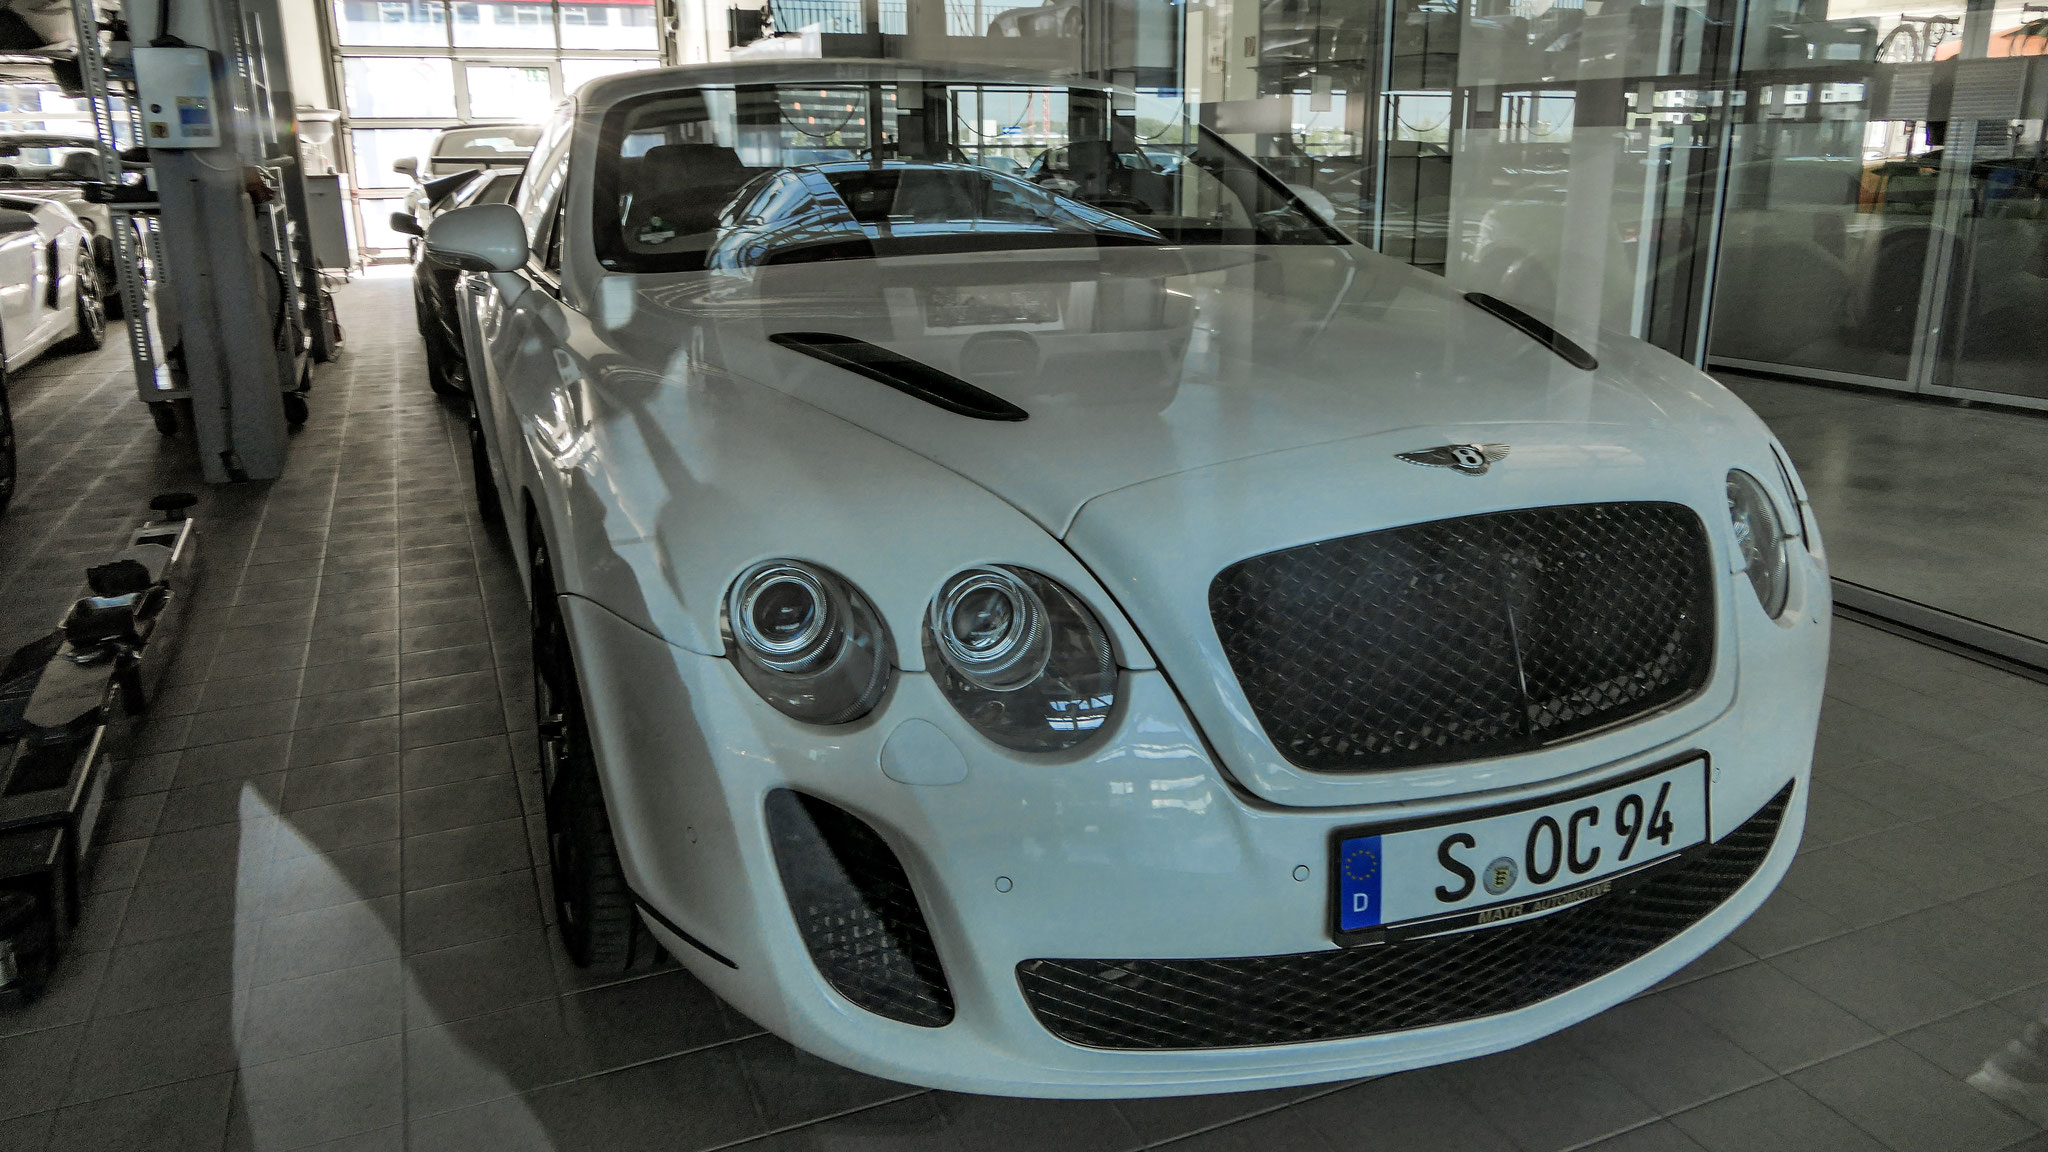 Bentley Continental GT Supersports - S-OC-94